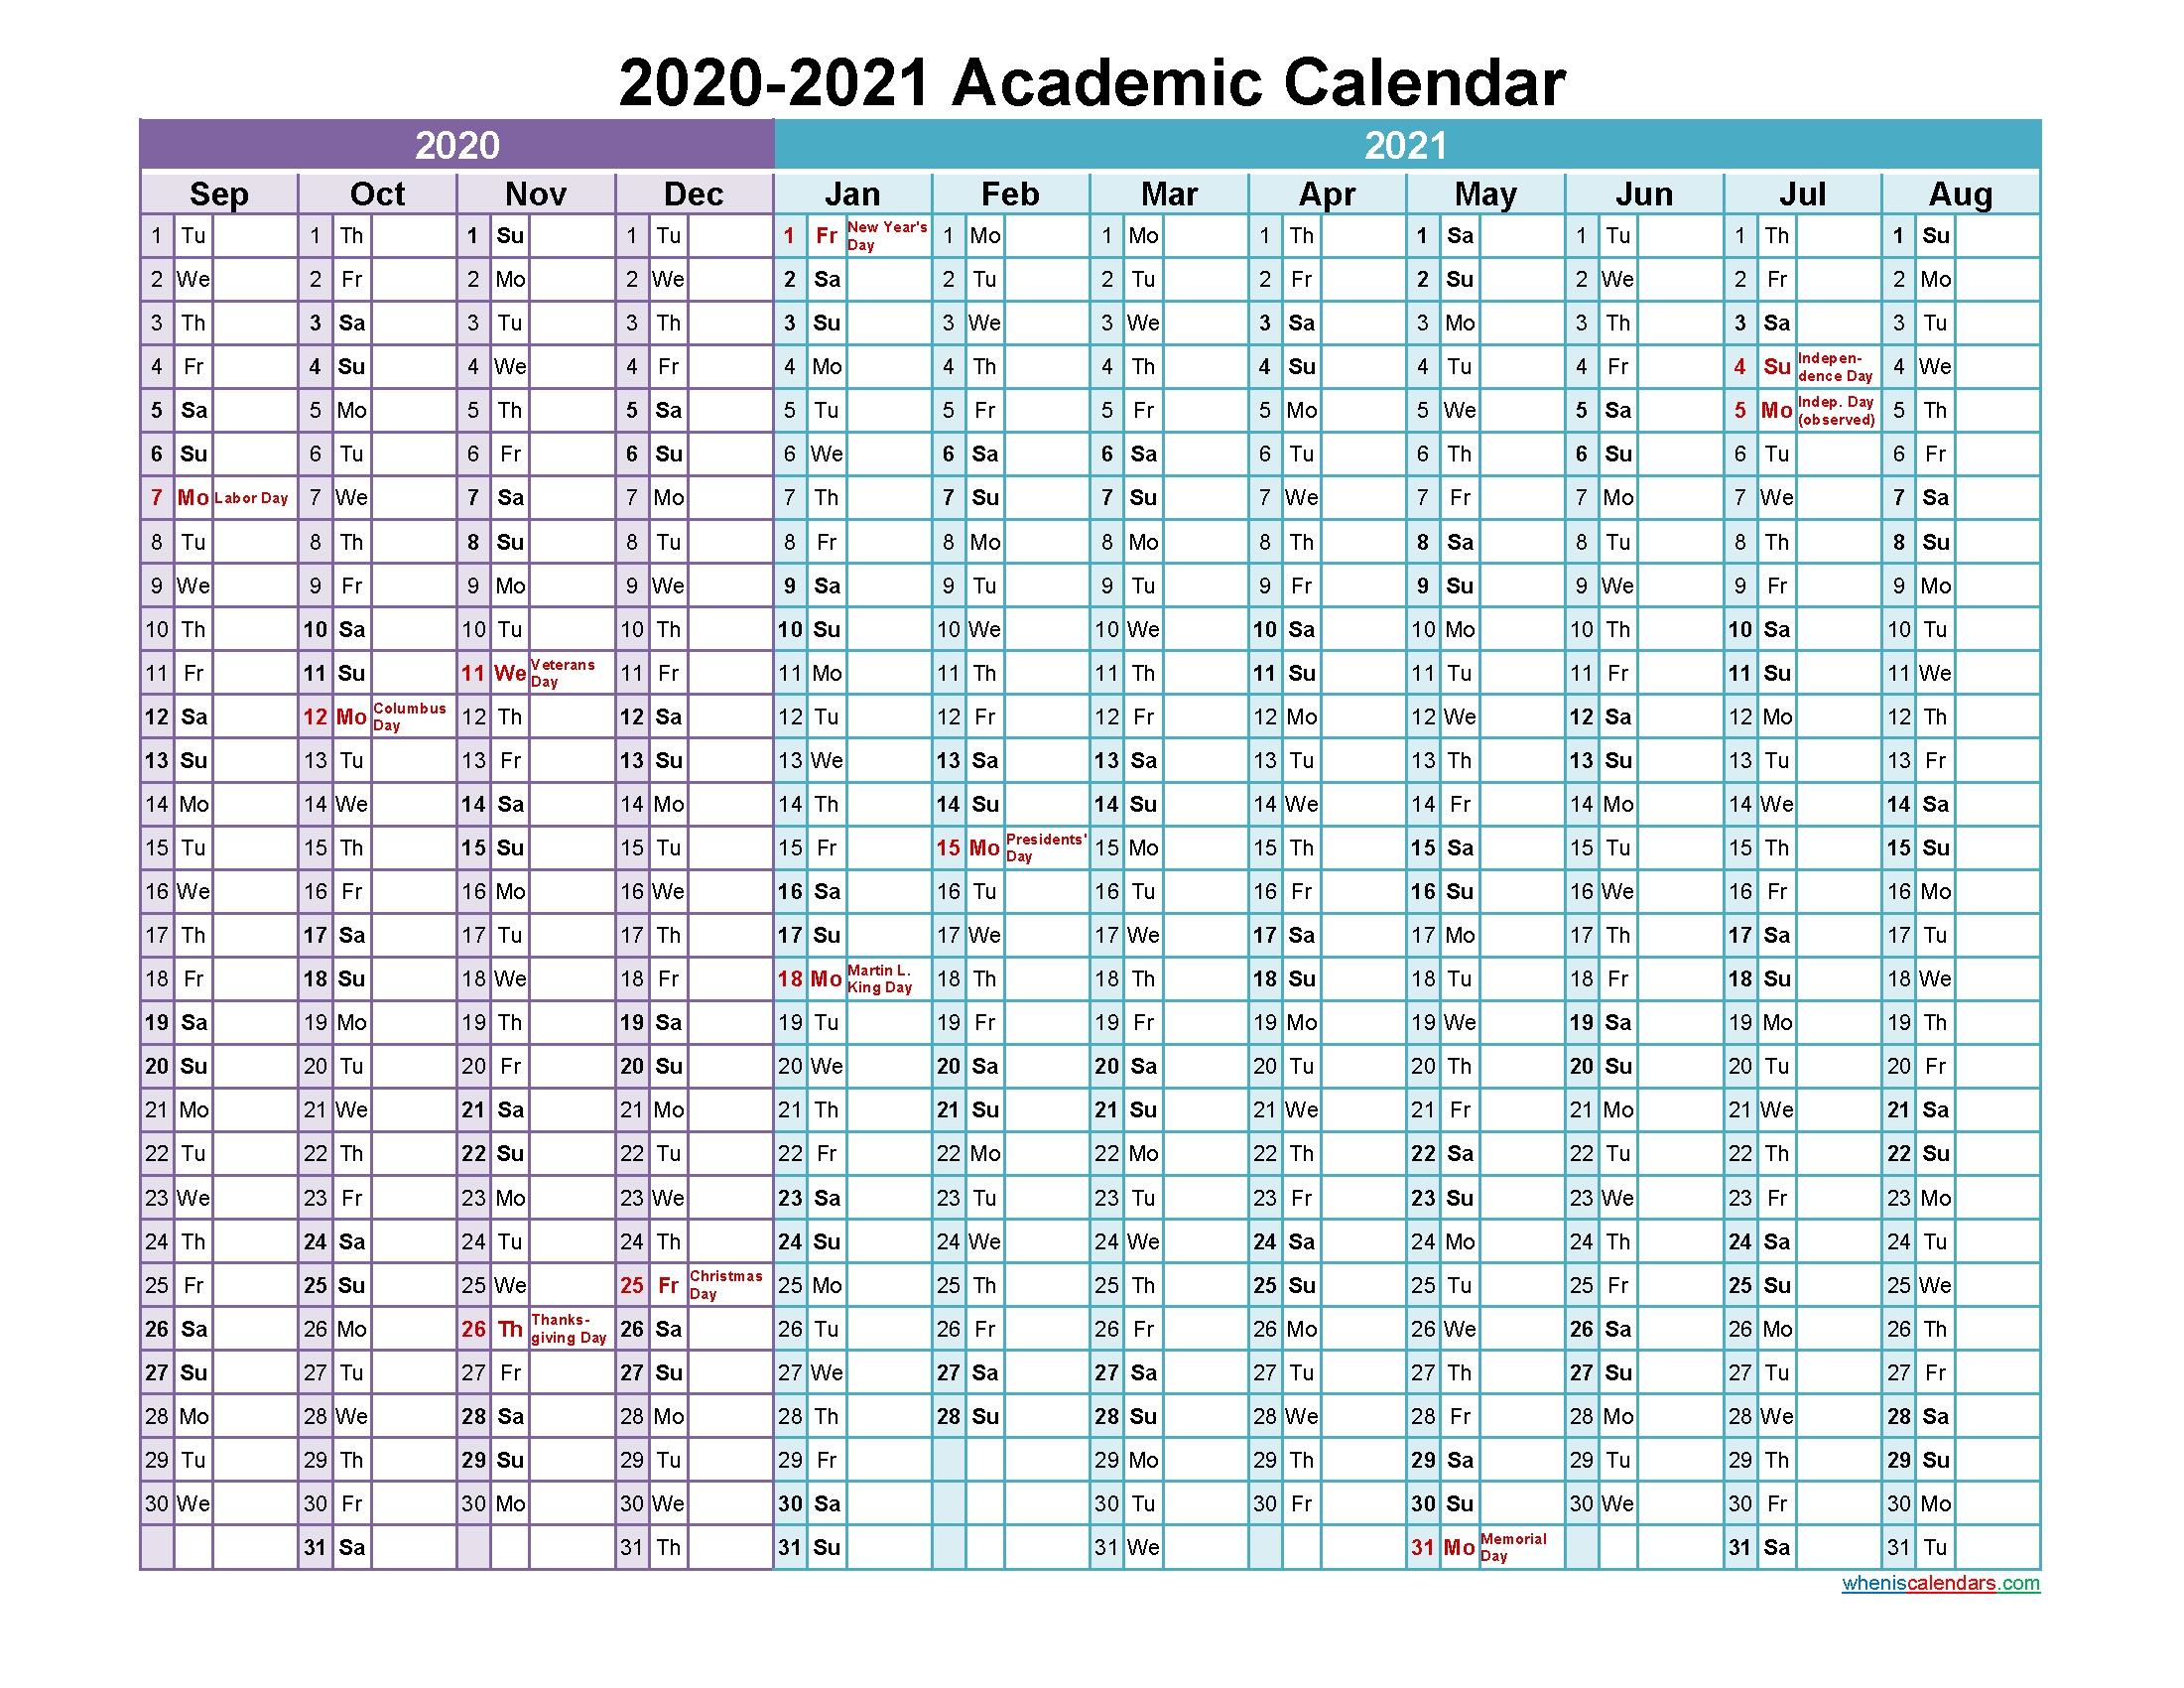 Academic Calendar 2020 And 2021 Printable (Landscape